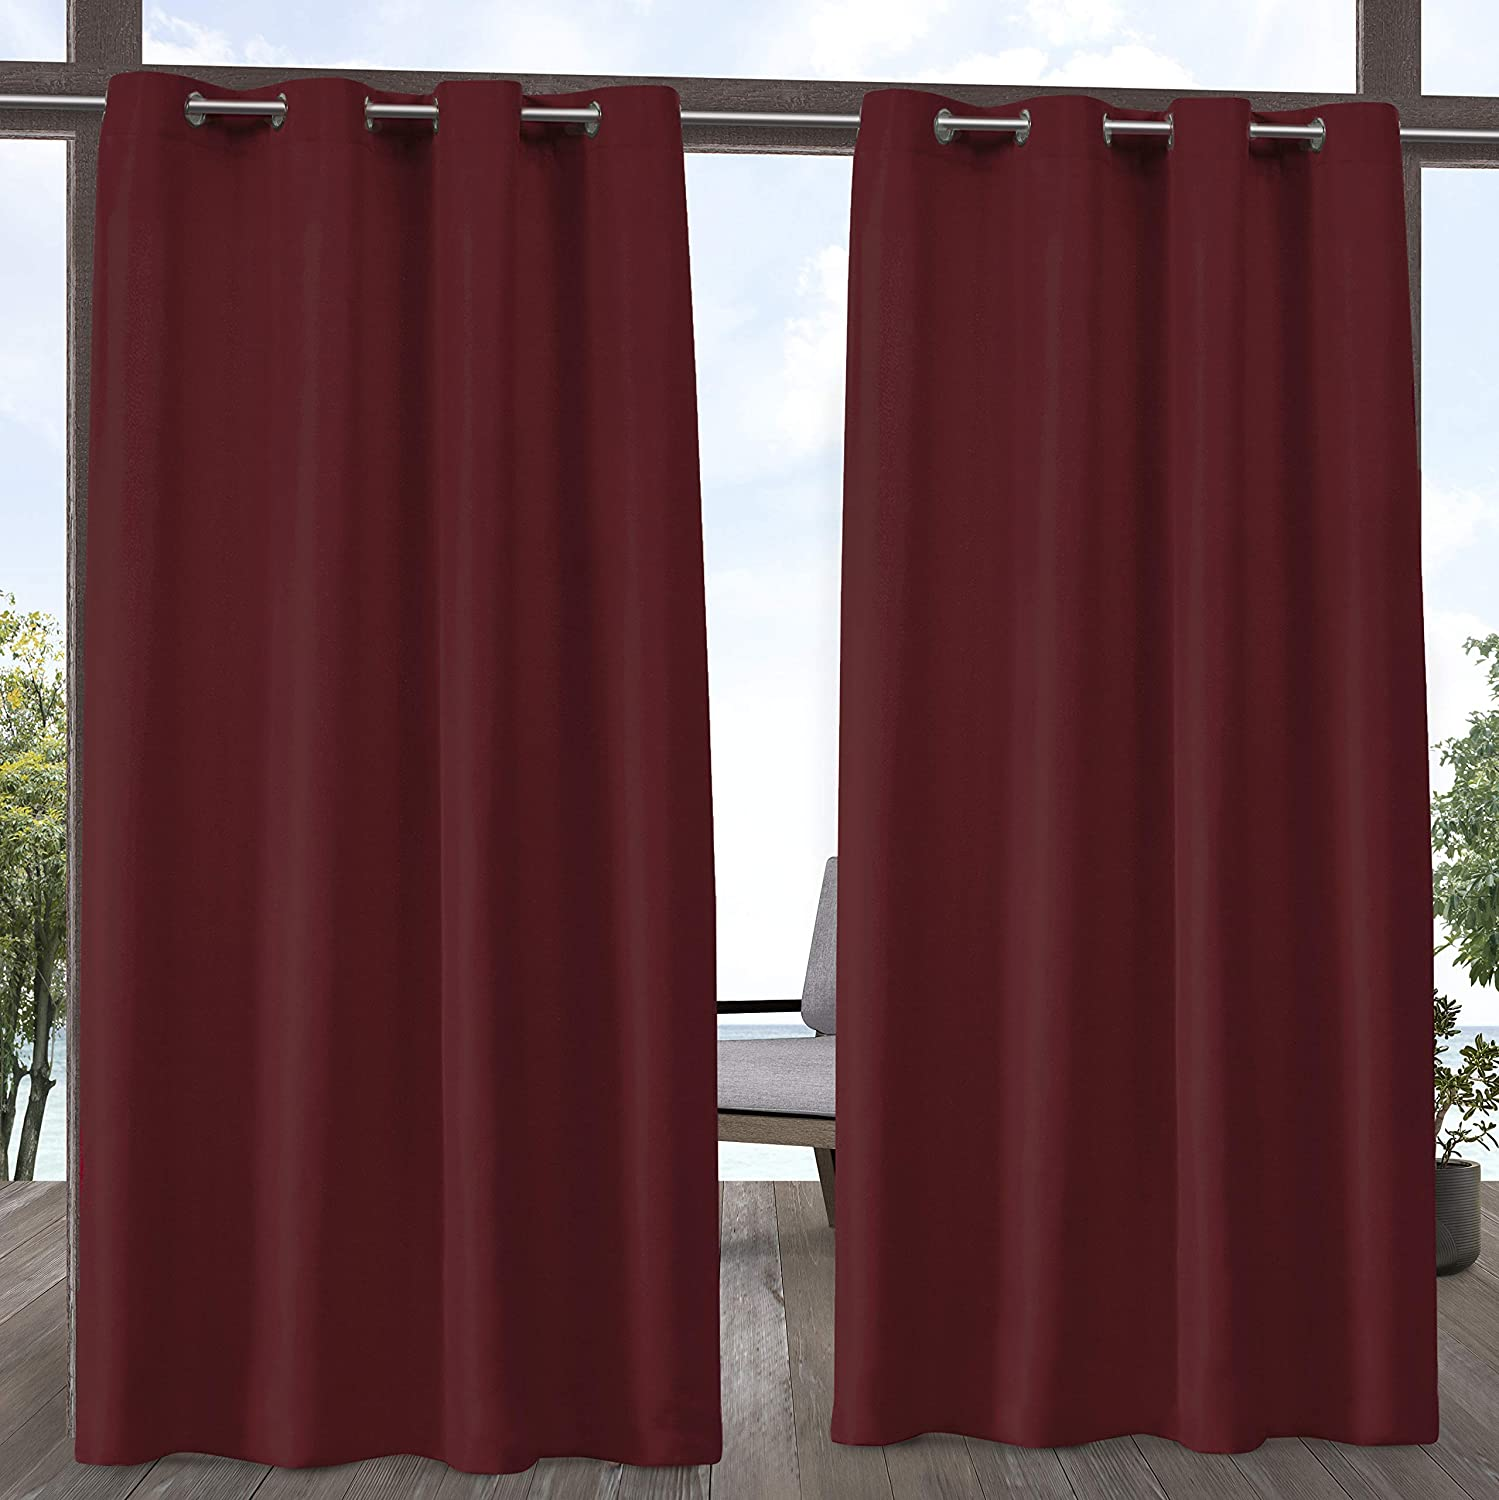 Exclusive Home Curtains Indoor/Outdoor Solid Cabana Grommet Top Curtain Panel Pair, 54x84, Radiant Red